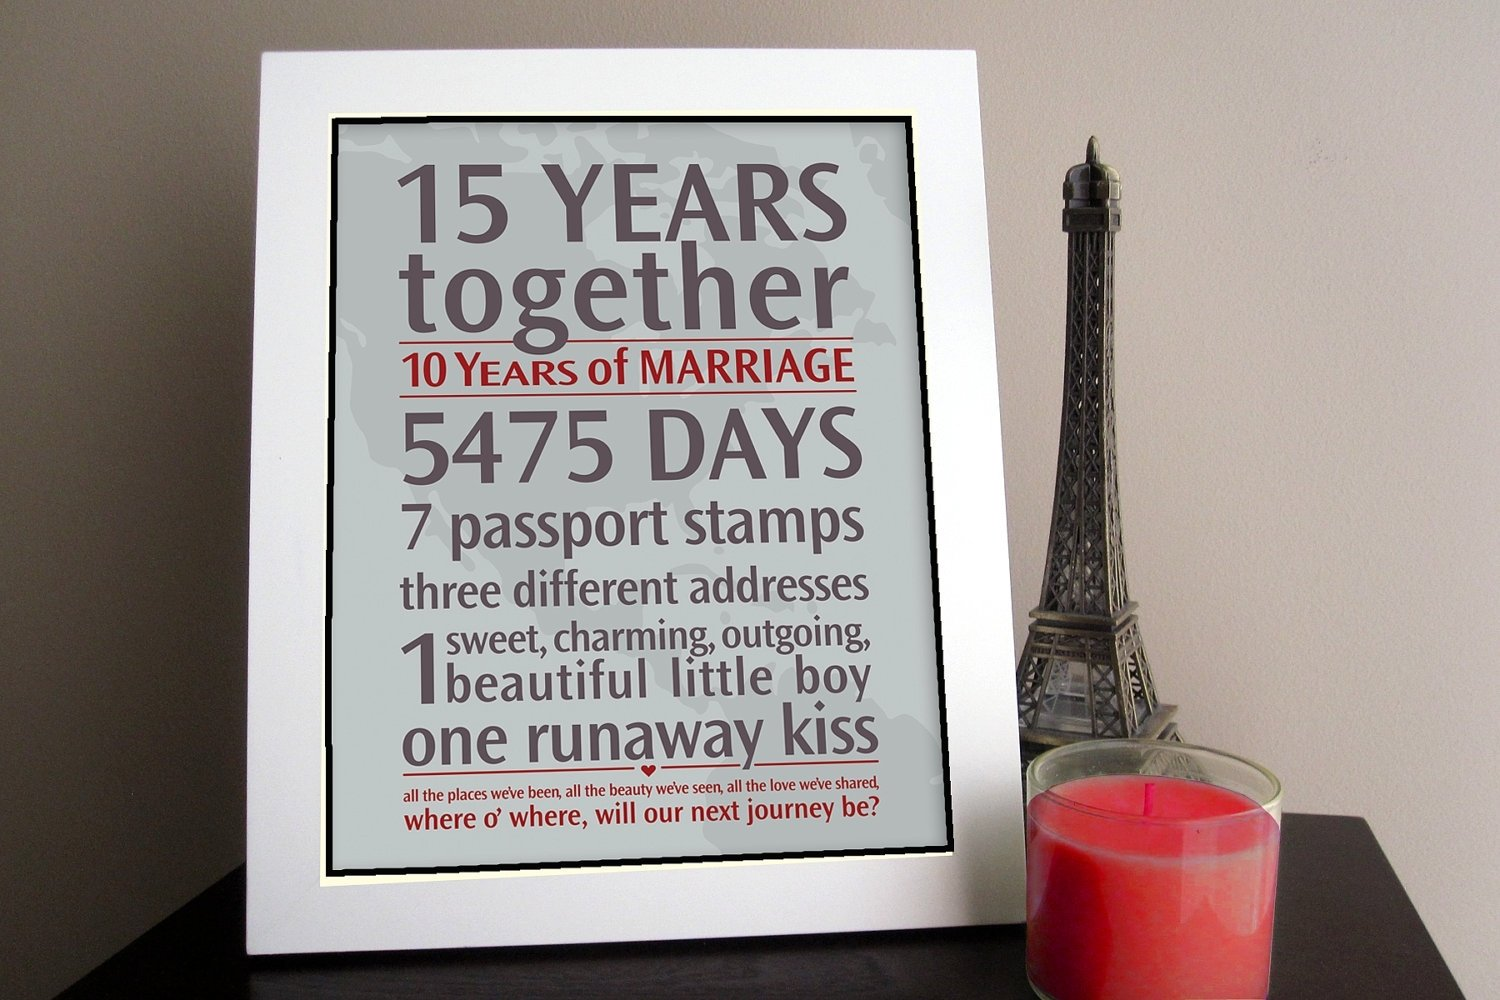 10 Great 50Th Wedding Anniversary Gift Ideas For Friends top 15 words memorable ideas for wedding anniversary gifts 6 2021